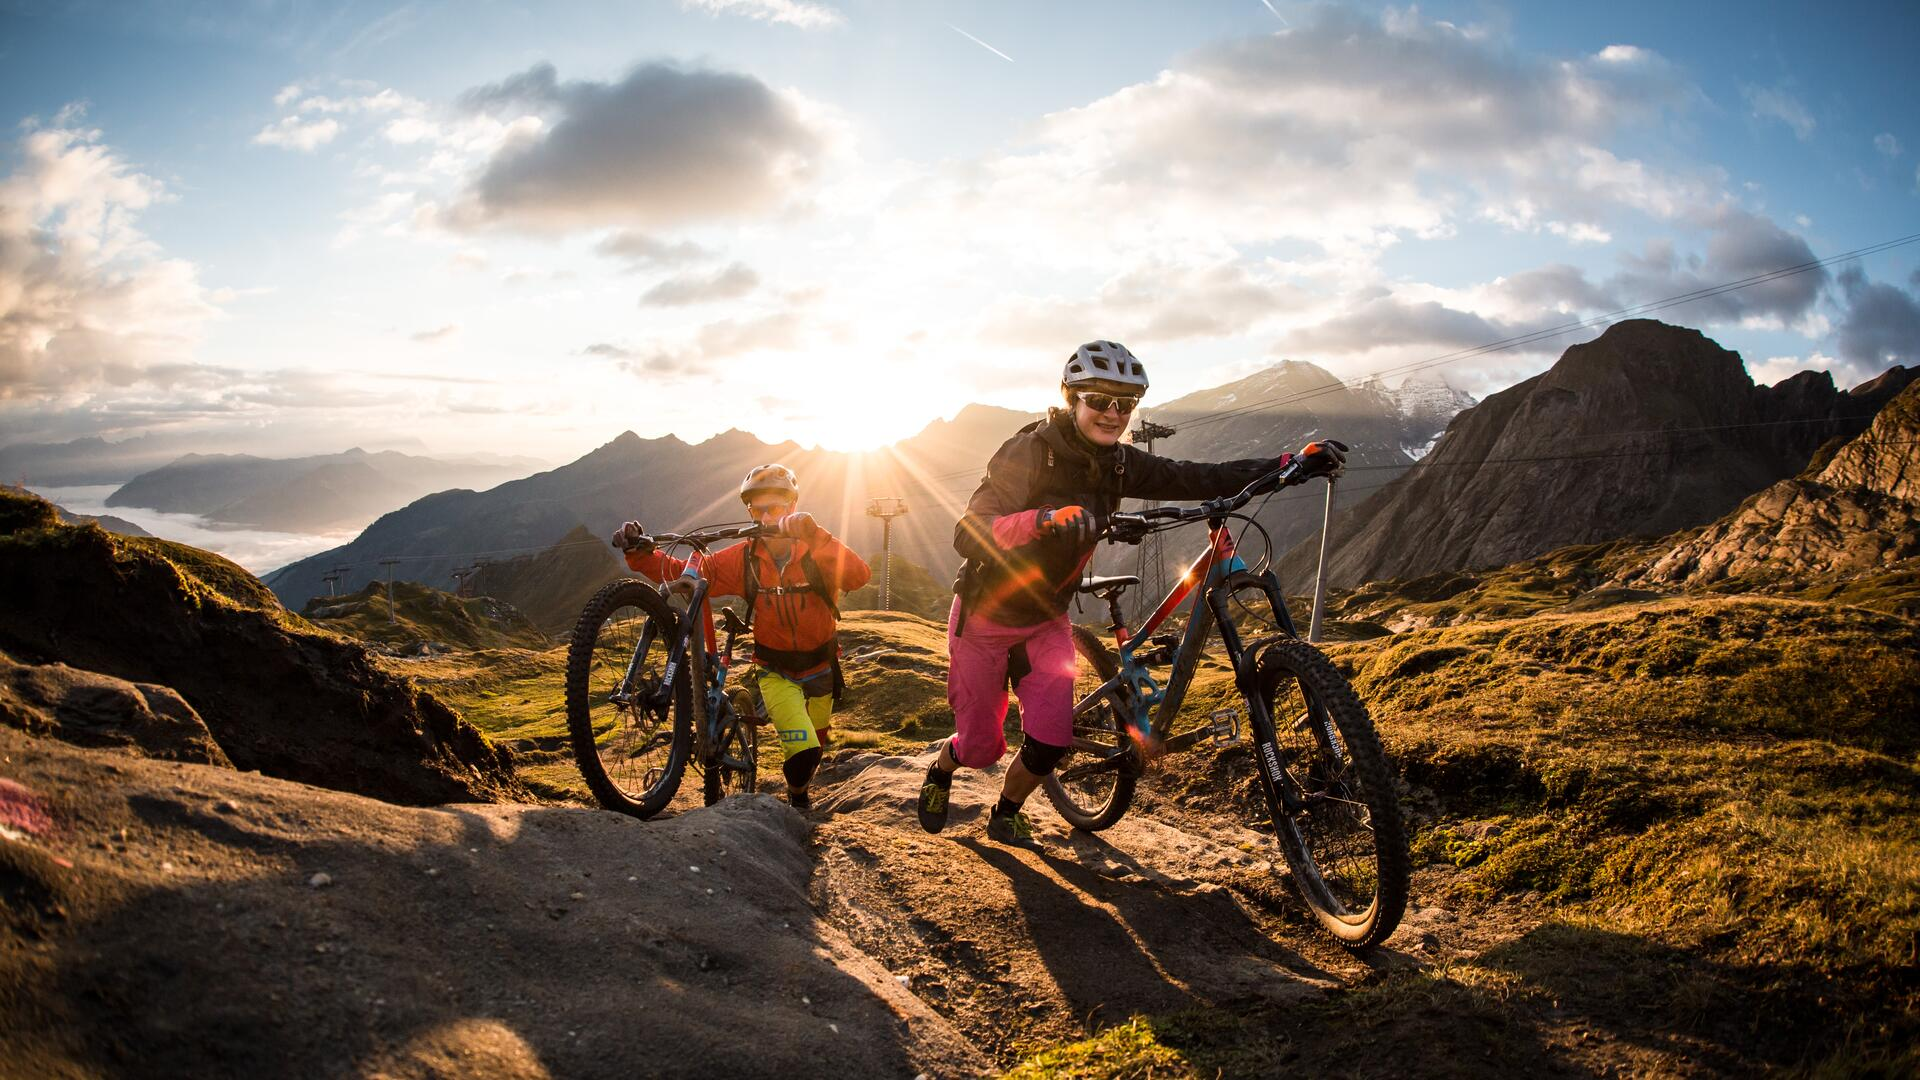 A paradise for mountain bikers, freeriders, uphillers and E-bikers | © SalzburgerLand - David Schultheiss for WOM Medien